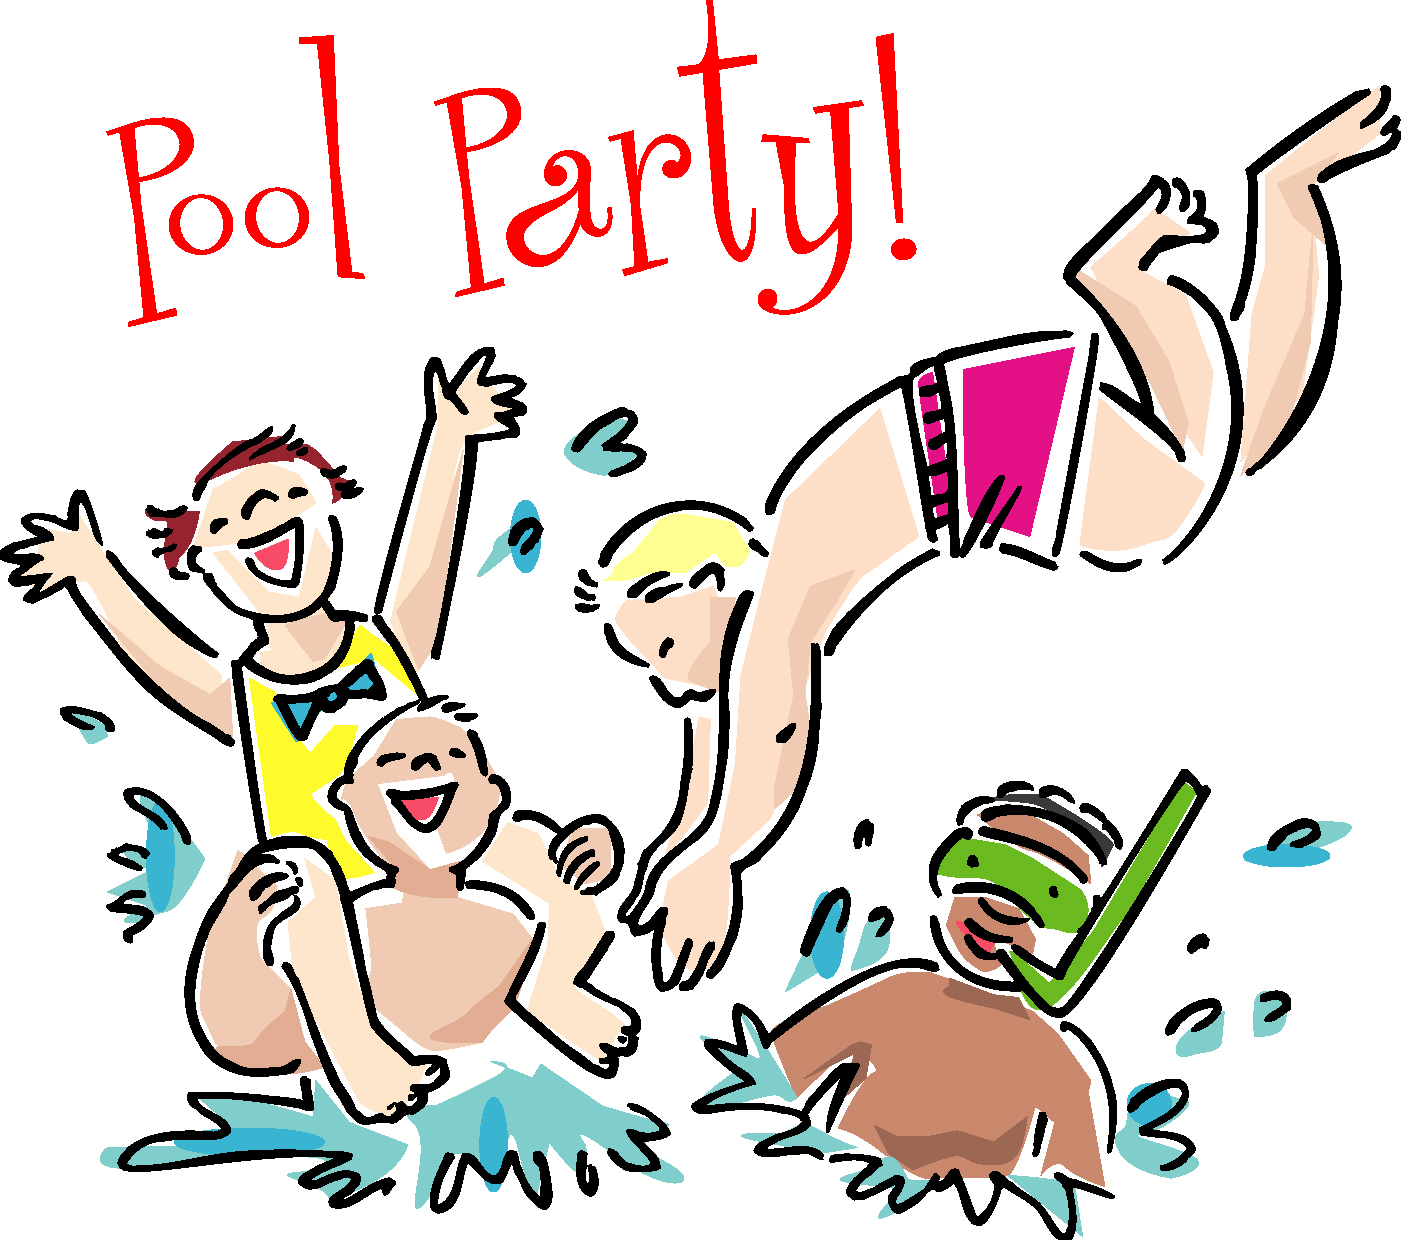 Swimmer clipart pool party. Swimming at getdrawings com